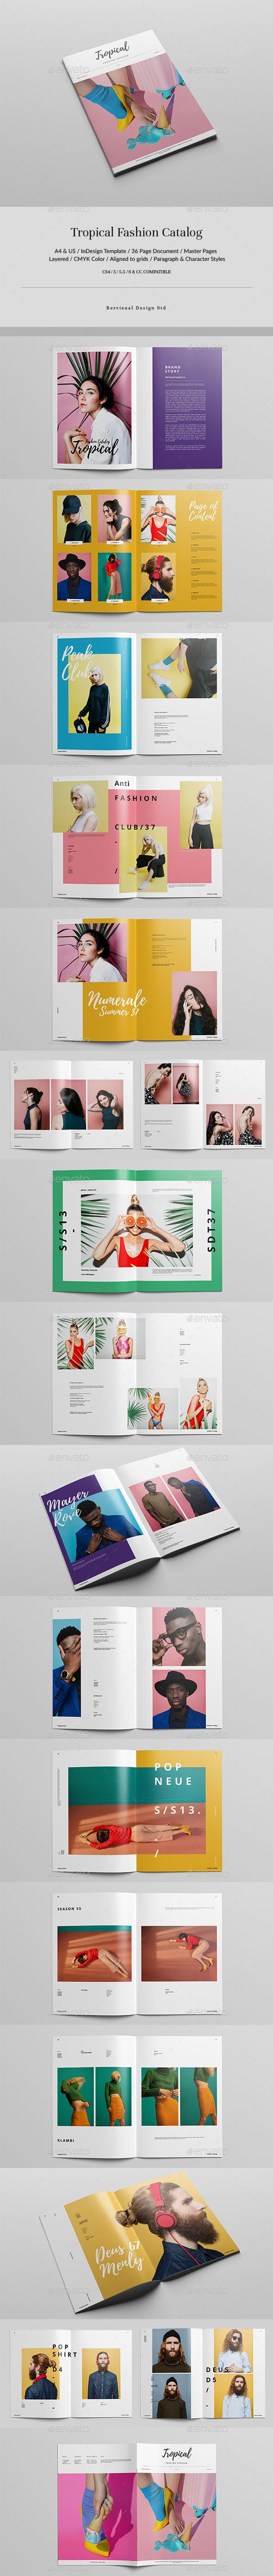 172 best lookbook templates images on pinterest